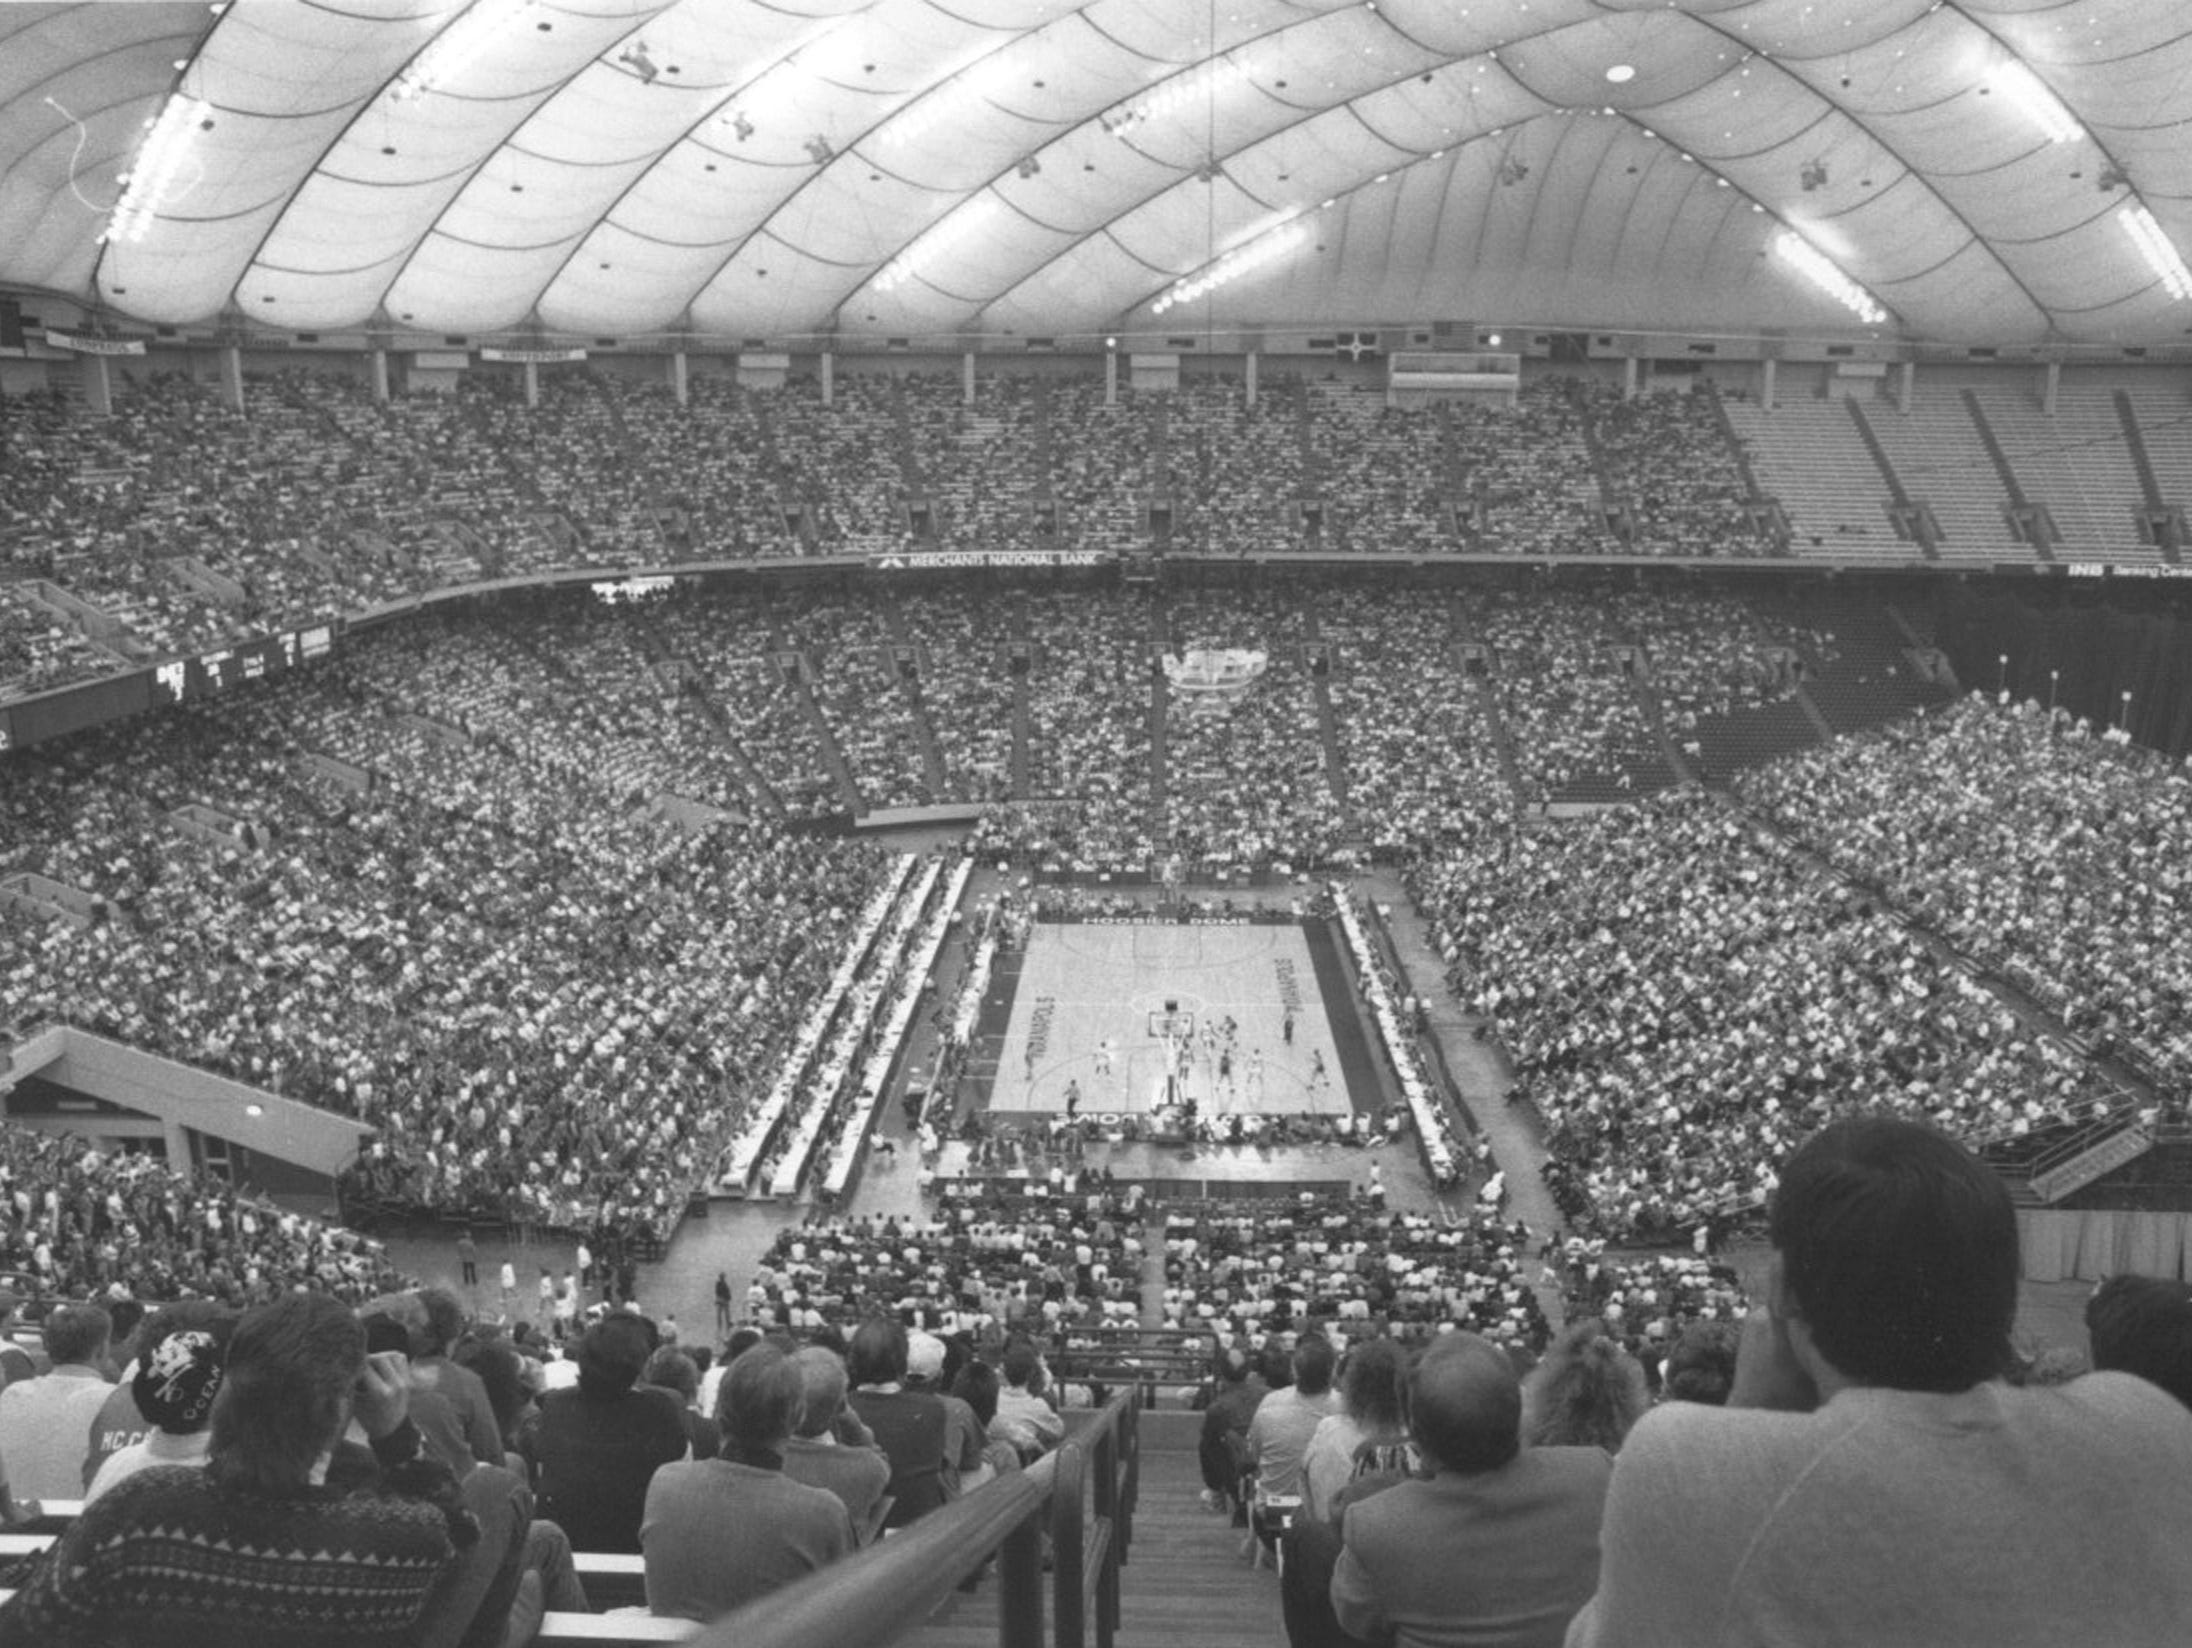 The 1990 IHSAA basketball finals moved to the then-Hoosier Dome. A national-record high school crowd of 41,046 was in attendance. The final game was Bedford North Lawrence (Damon Bailey) vs. Concord.